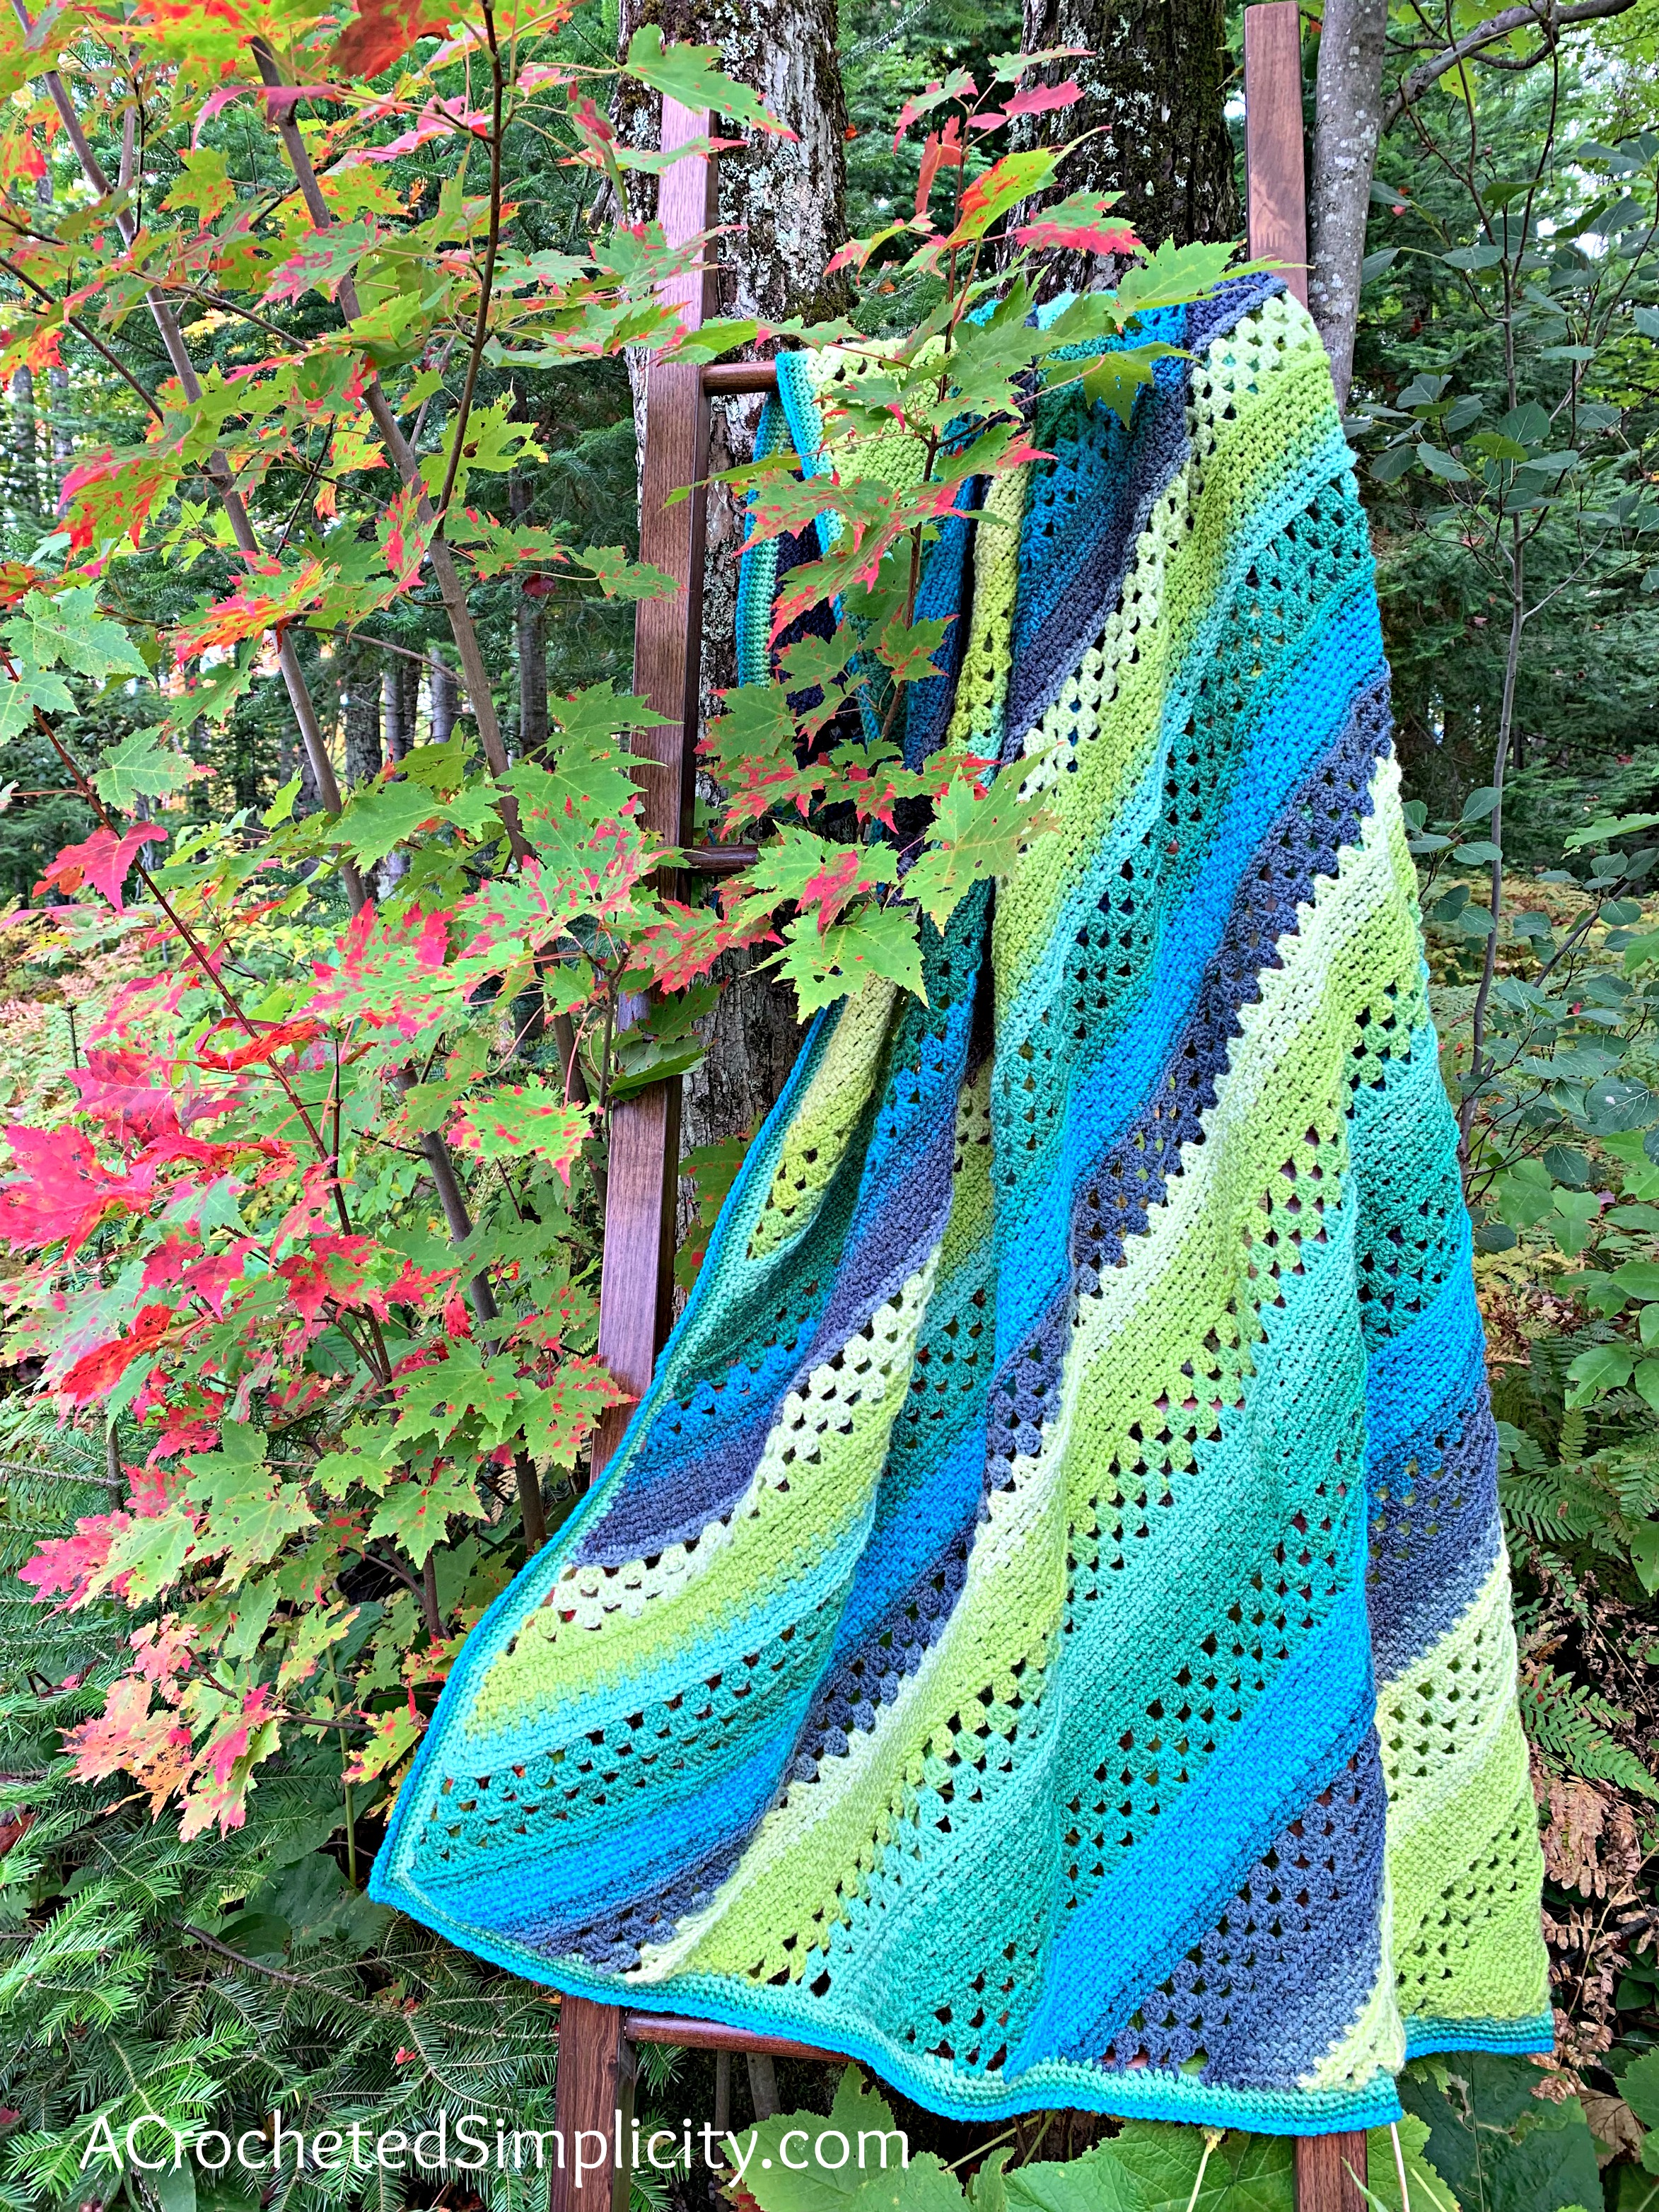 Free Crochet Blanket Pattern - On the Bias Rectangular Afghan by A Crocheted Simplicity #crochetblanket #crochetafghan #freecrochetpattern #freecrochetblanketpattern #handmadeblanket #homemade #lionbrandwooleasecakes